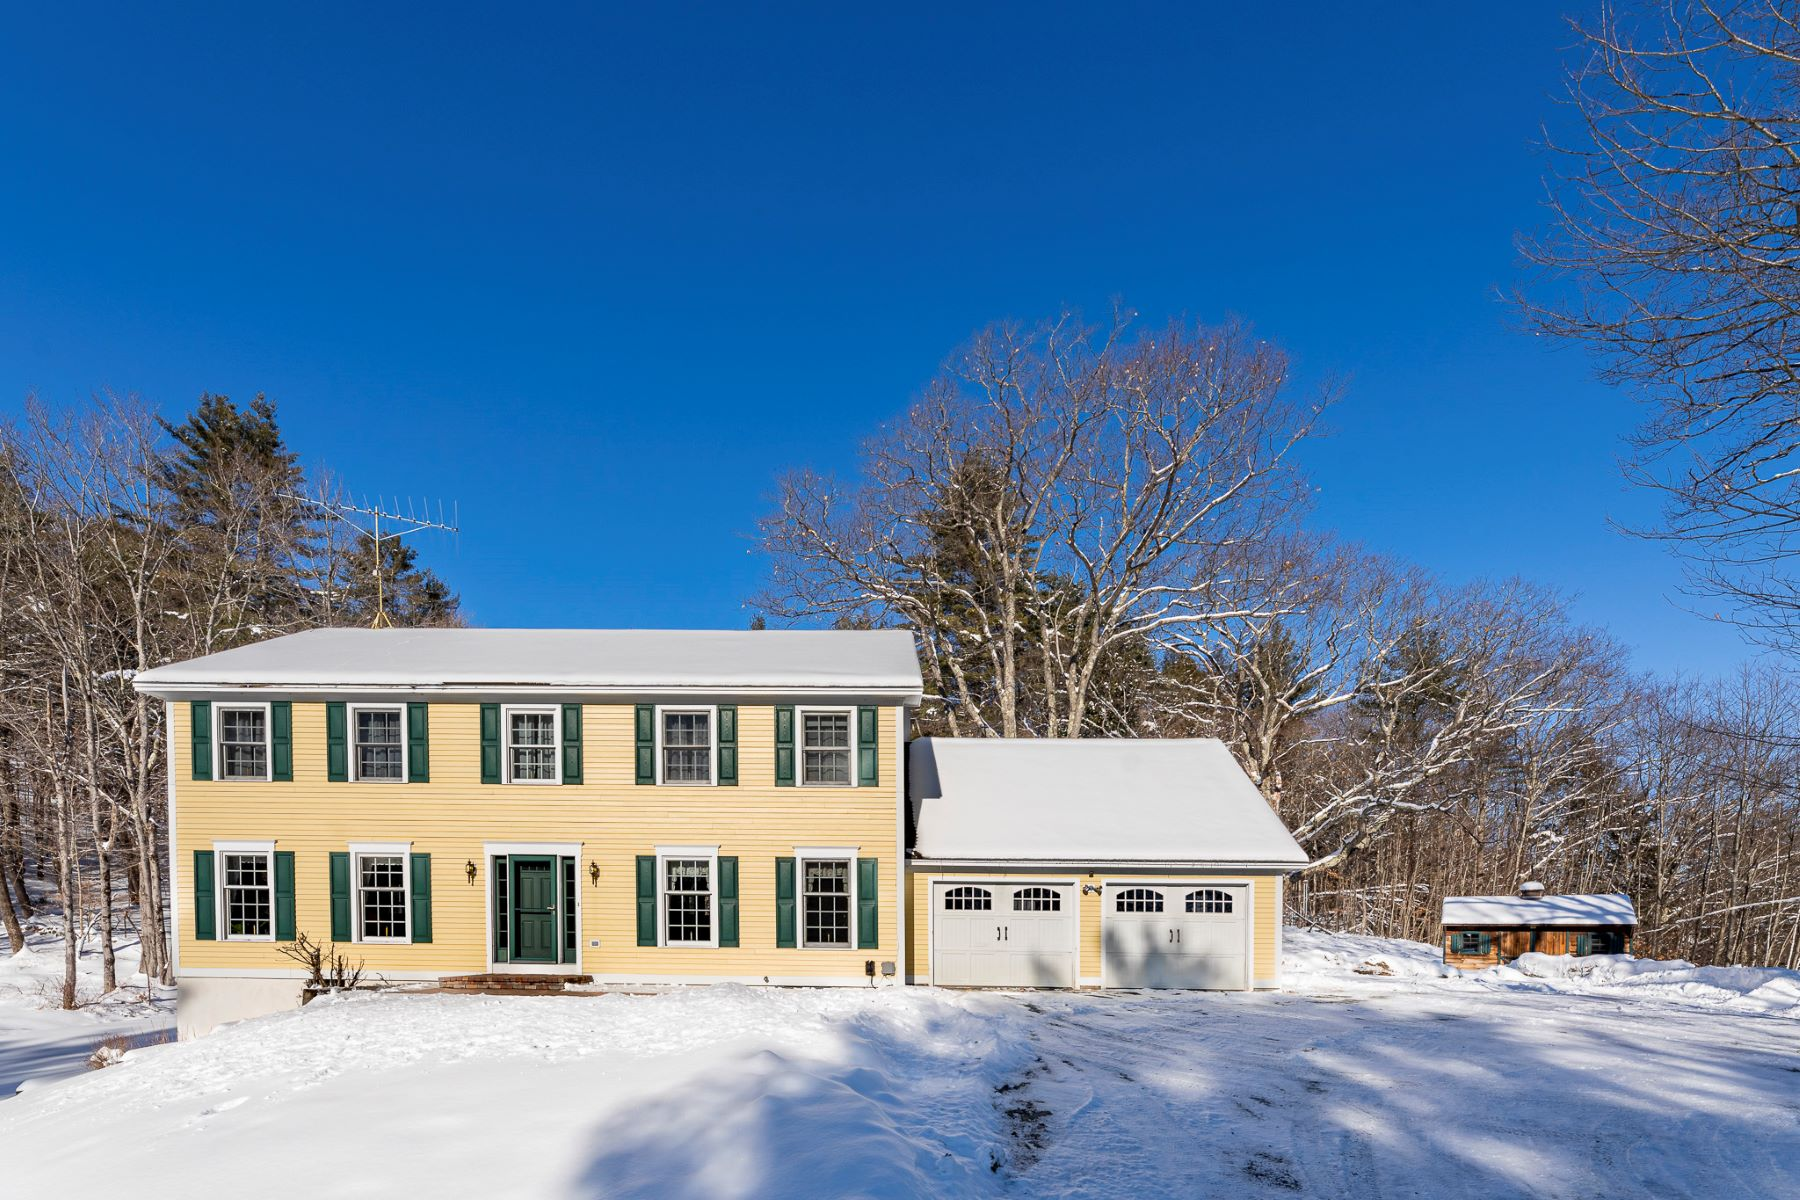 Single Family Homes for Sale at 34 Mount Tabor Road, Norwich 34 Mount Tabor Rd Norwich, Vermont 05055 United States